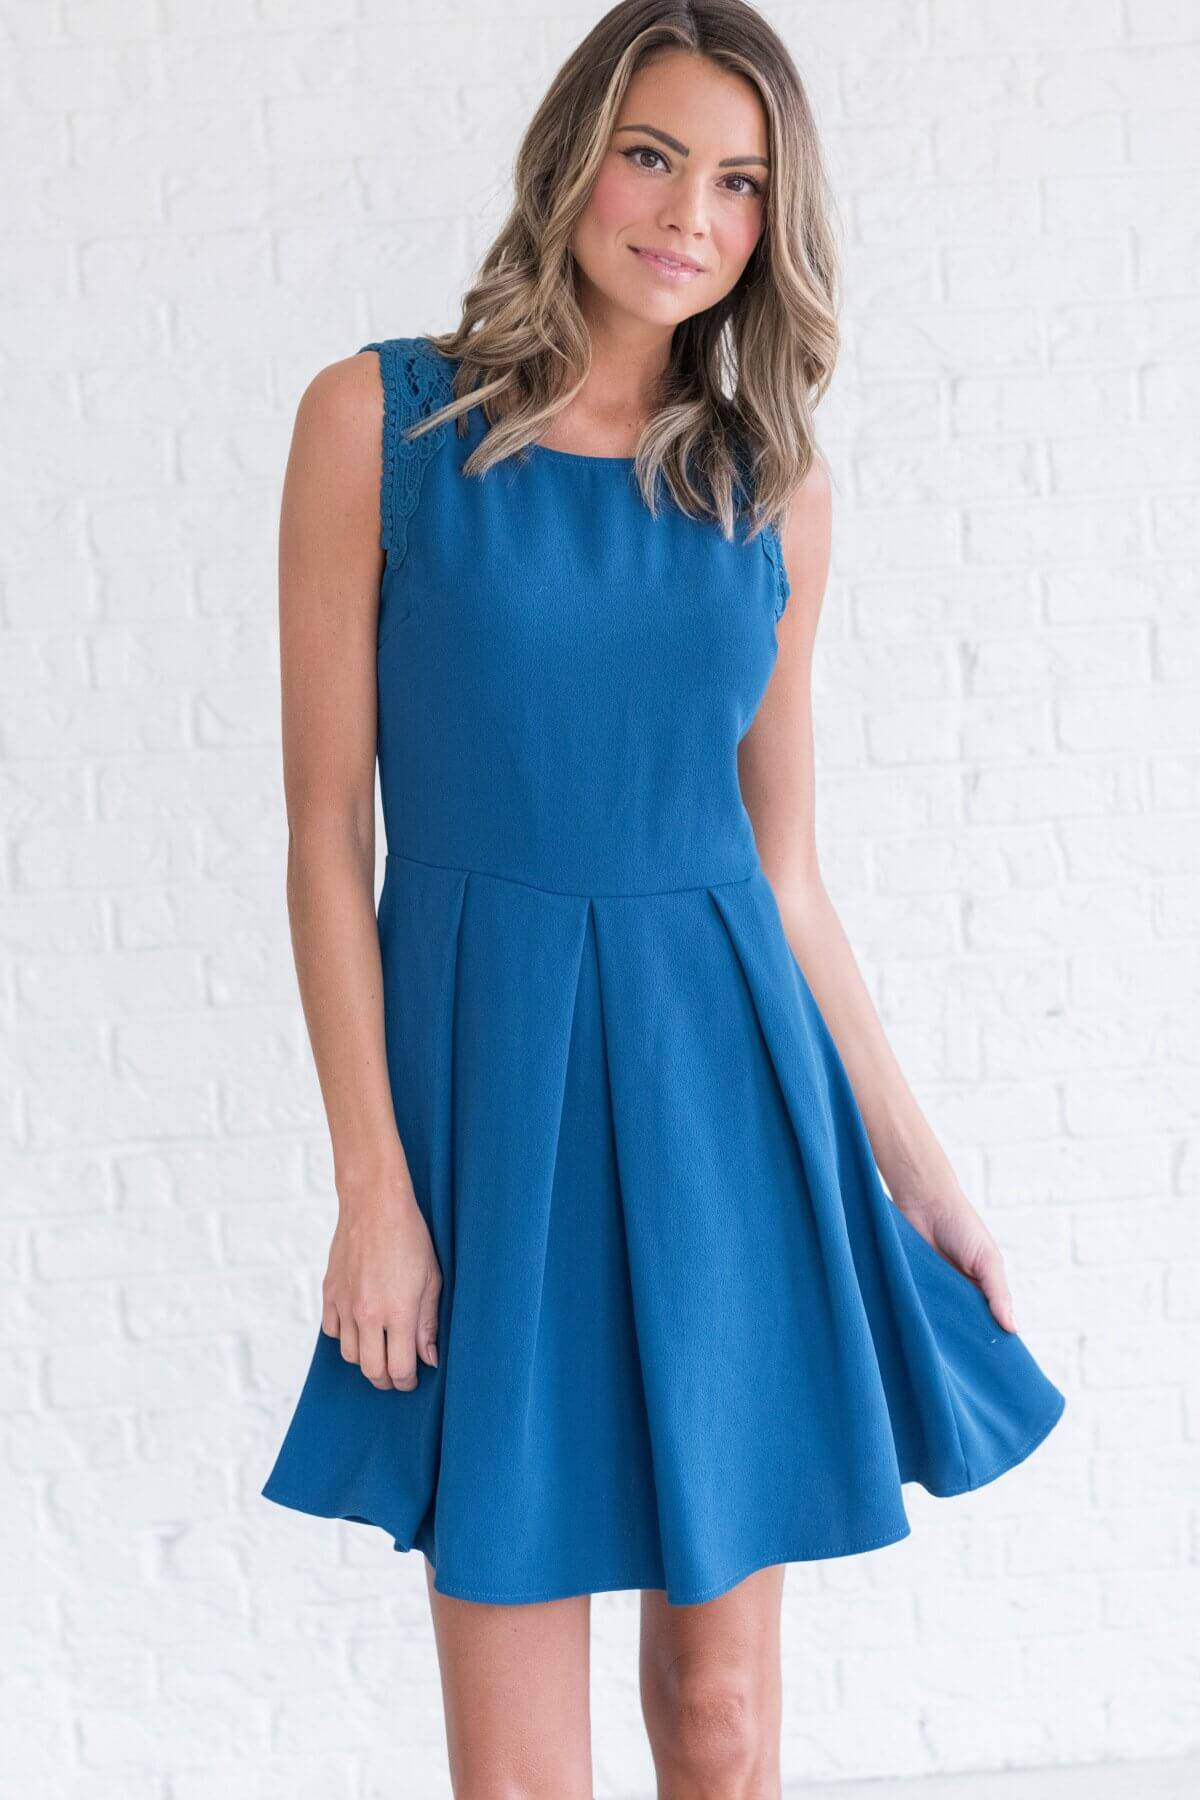 Teal Blue Cute Pleated Mini Dress with Sleeveless Style Boutique Business Casual for Women